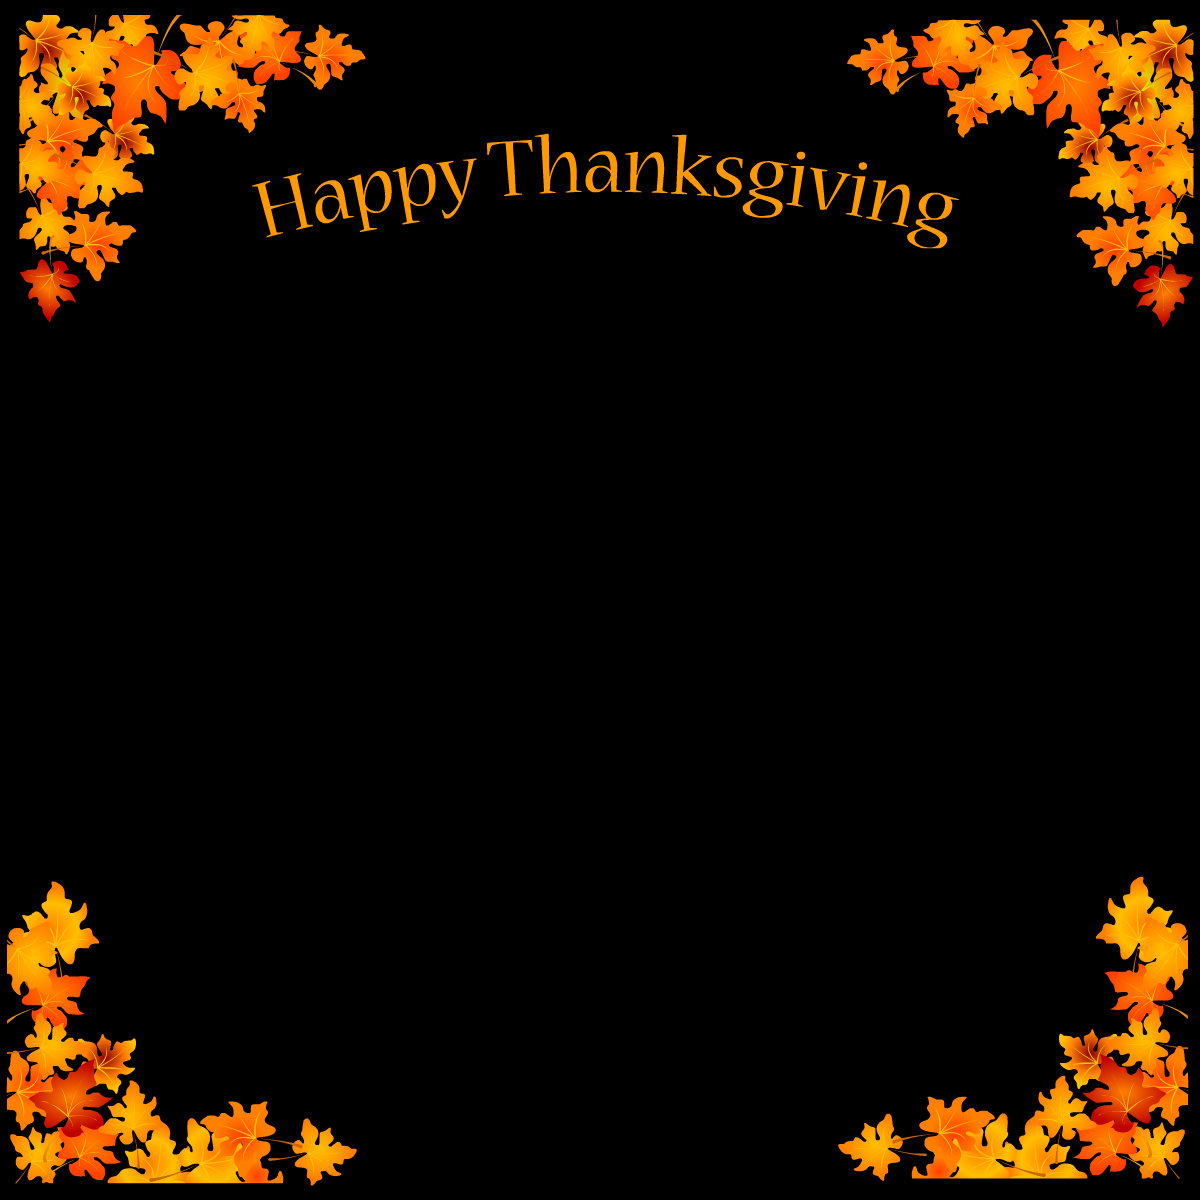 harley davidson images happy thanksgiving hd wallpaper and